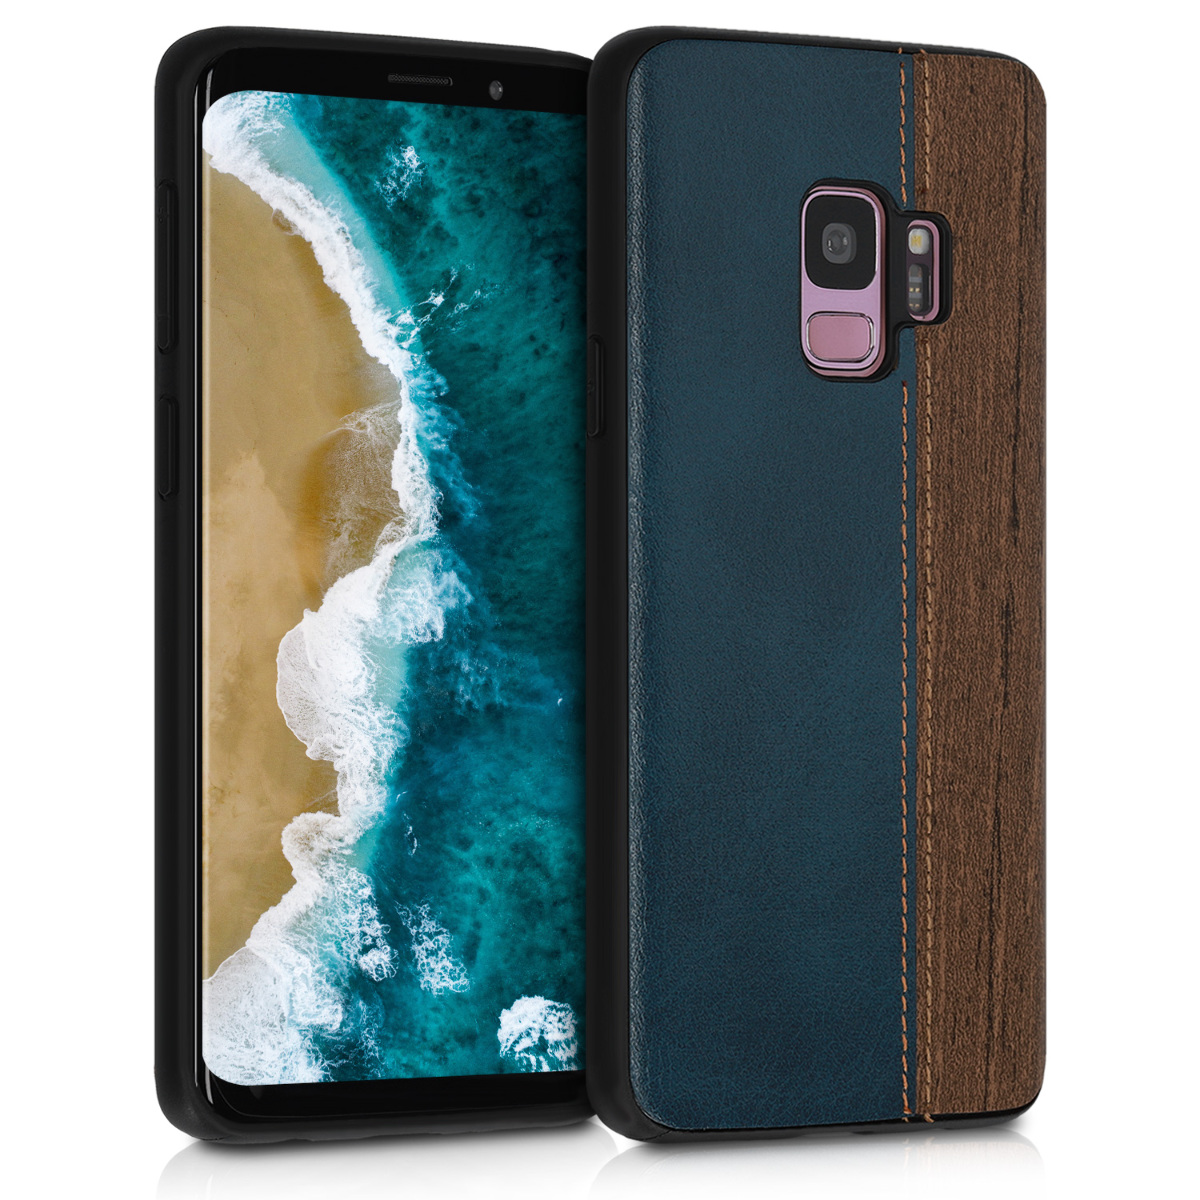 Pouzdro pro Samsung Galaxy S9 - Hard Plastic Anti-Scratch Shockproof Protective Smartphone Cover - Wood Look Faux Leather Dark Blue / Brown